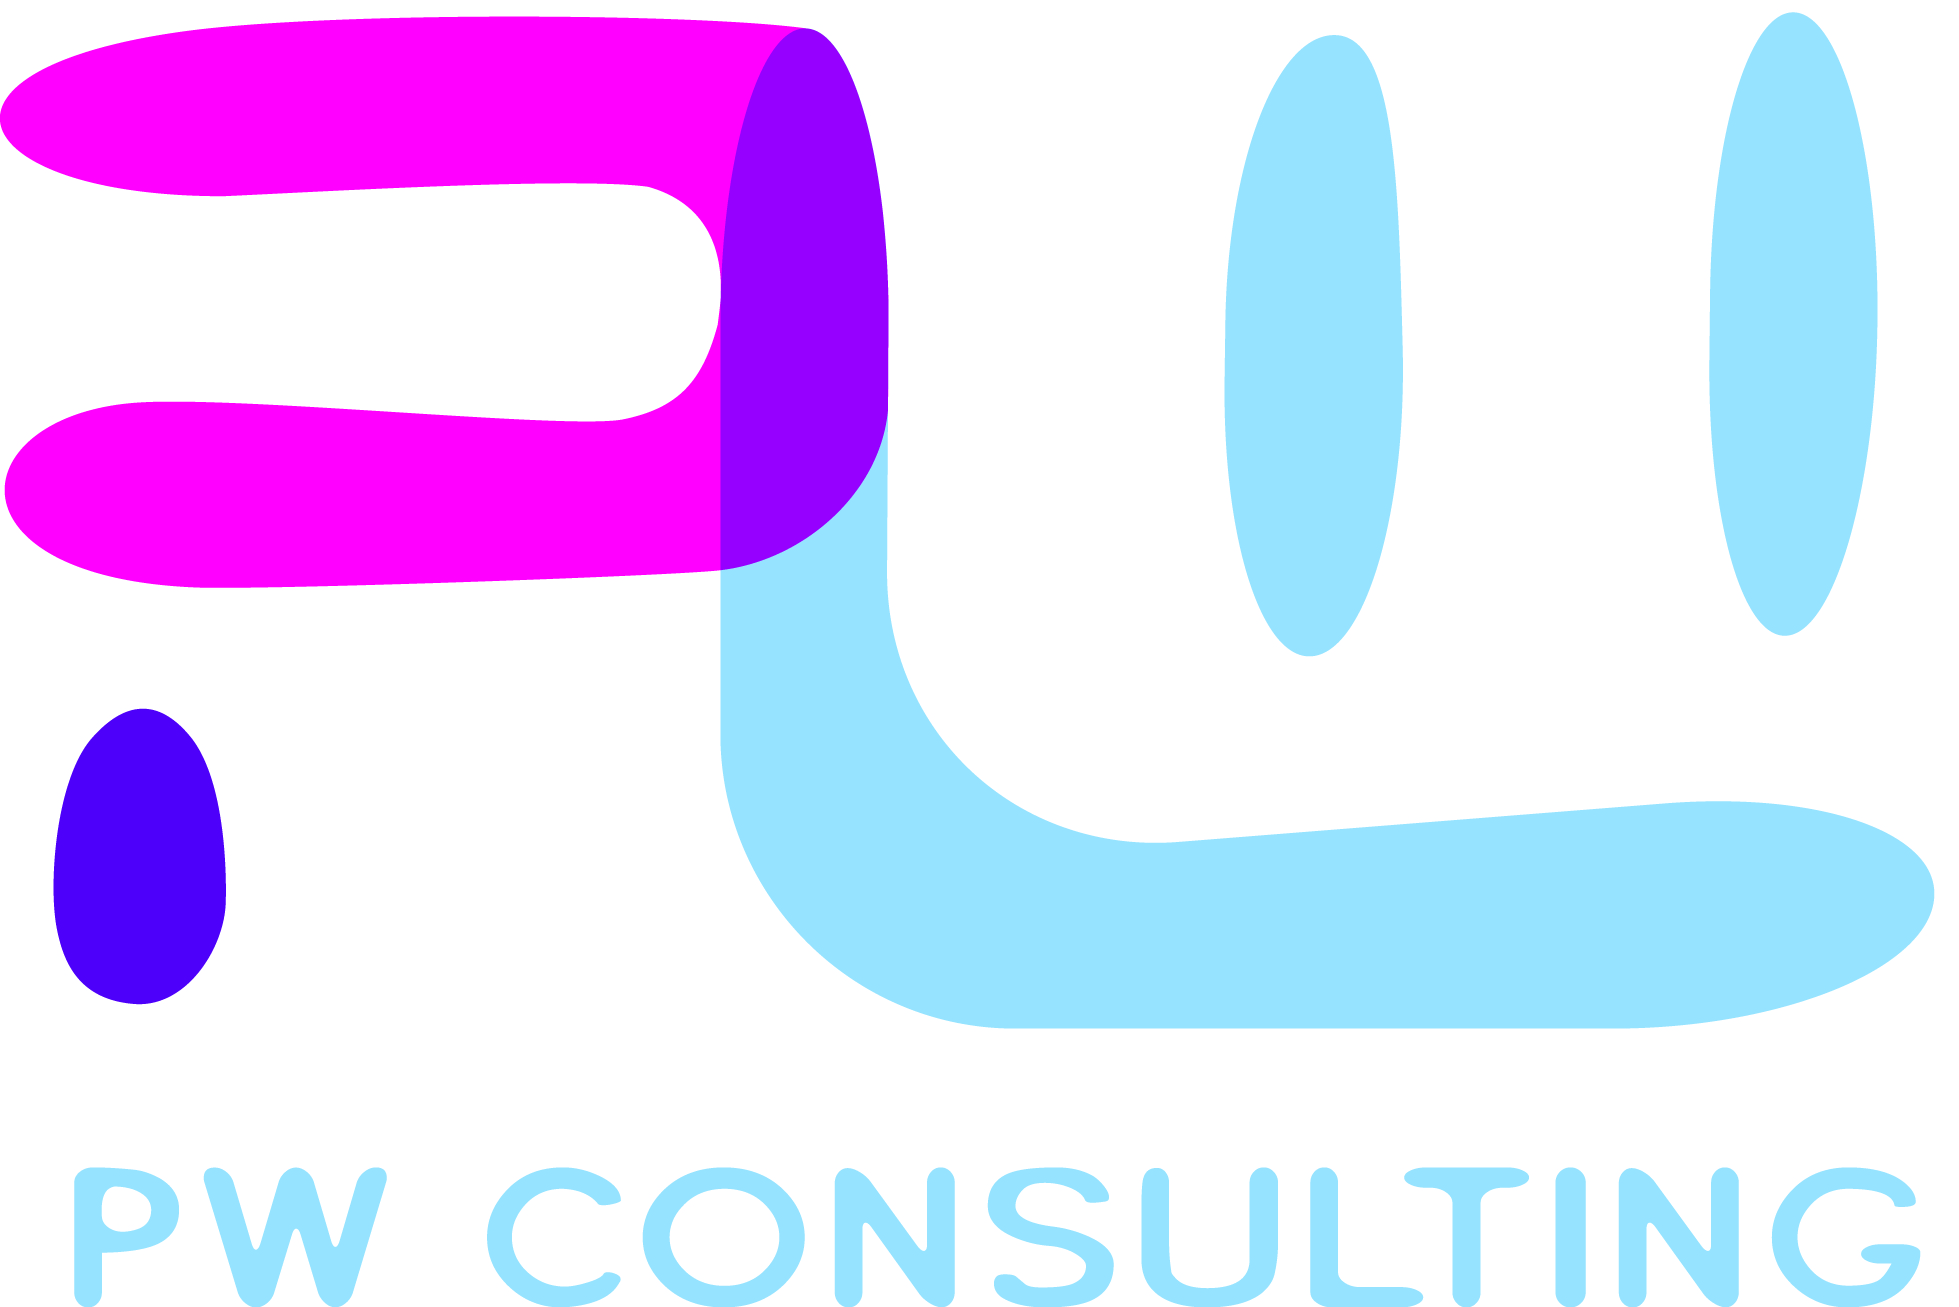 PW Consulting